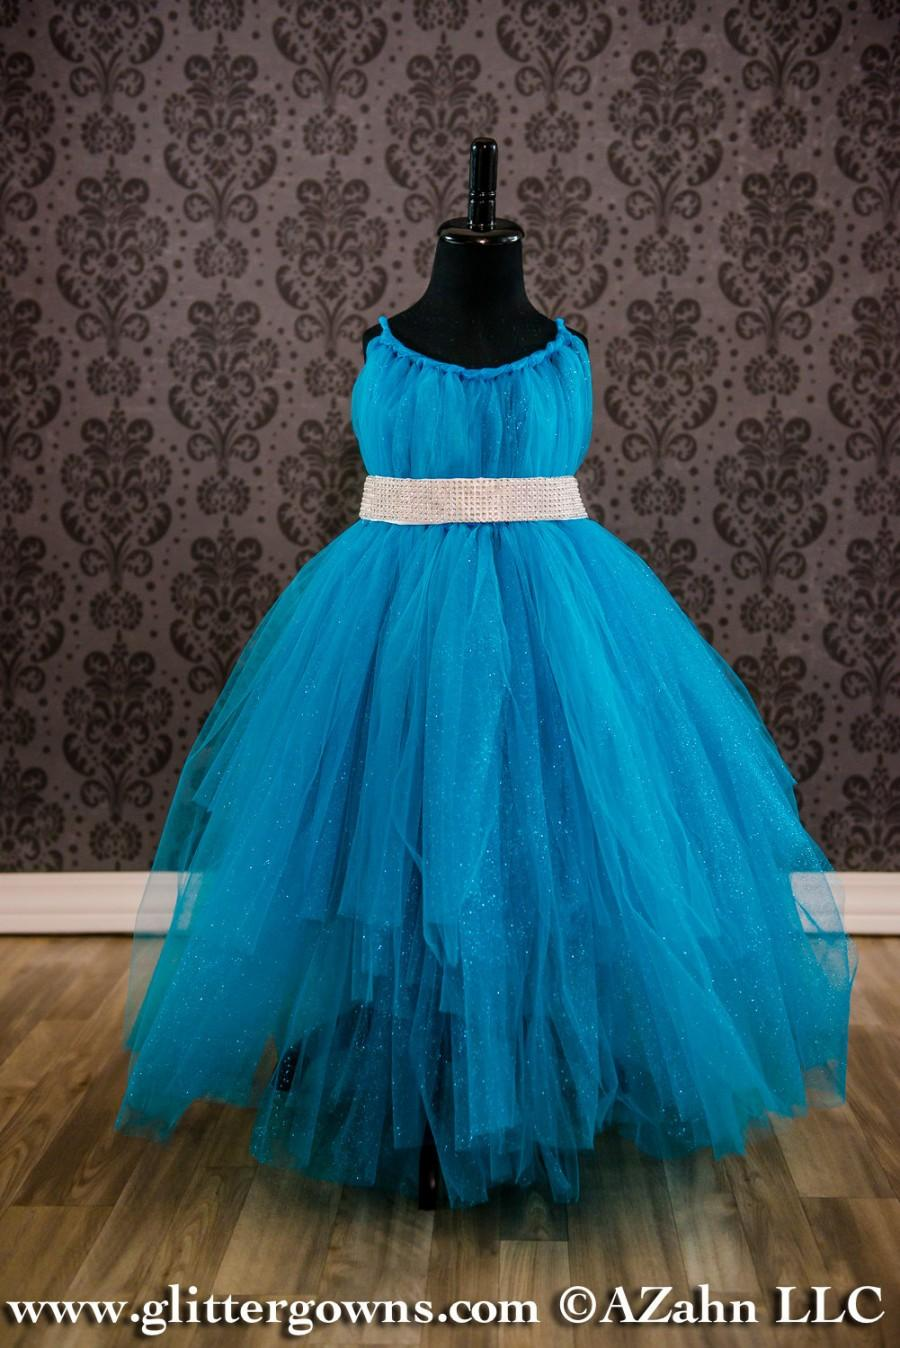 Hochzeit - Flower Girl Dress - Turquoise Sparkle Tulle, Frozen - Elsa - Princess Dress, Fairy Dress,